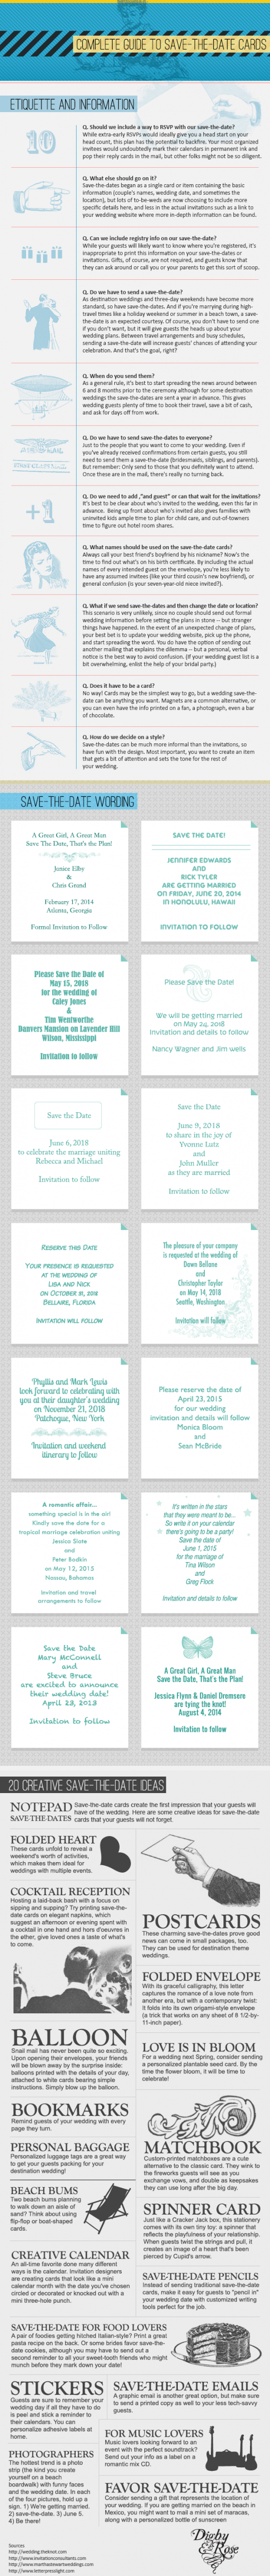 Complete Guide To Save-The-Date Cards